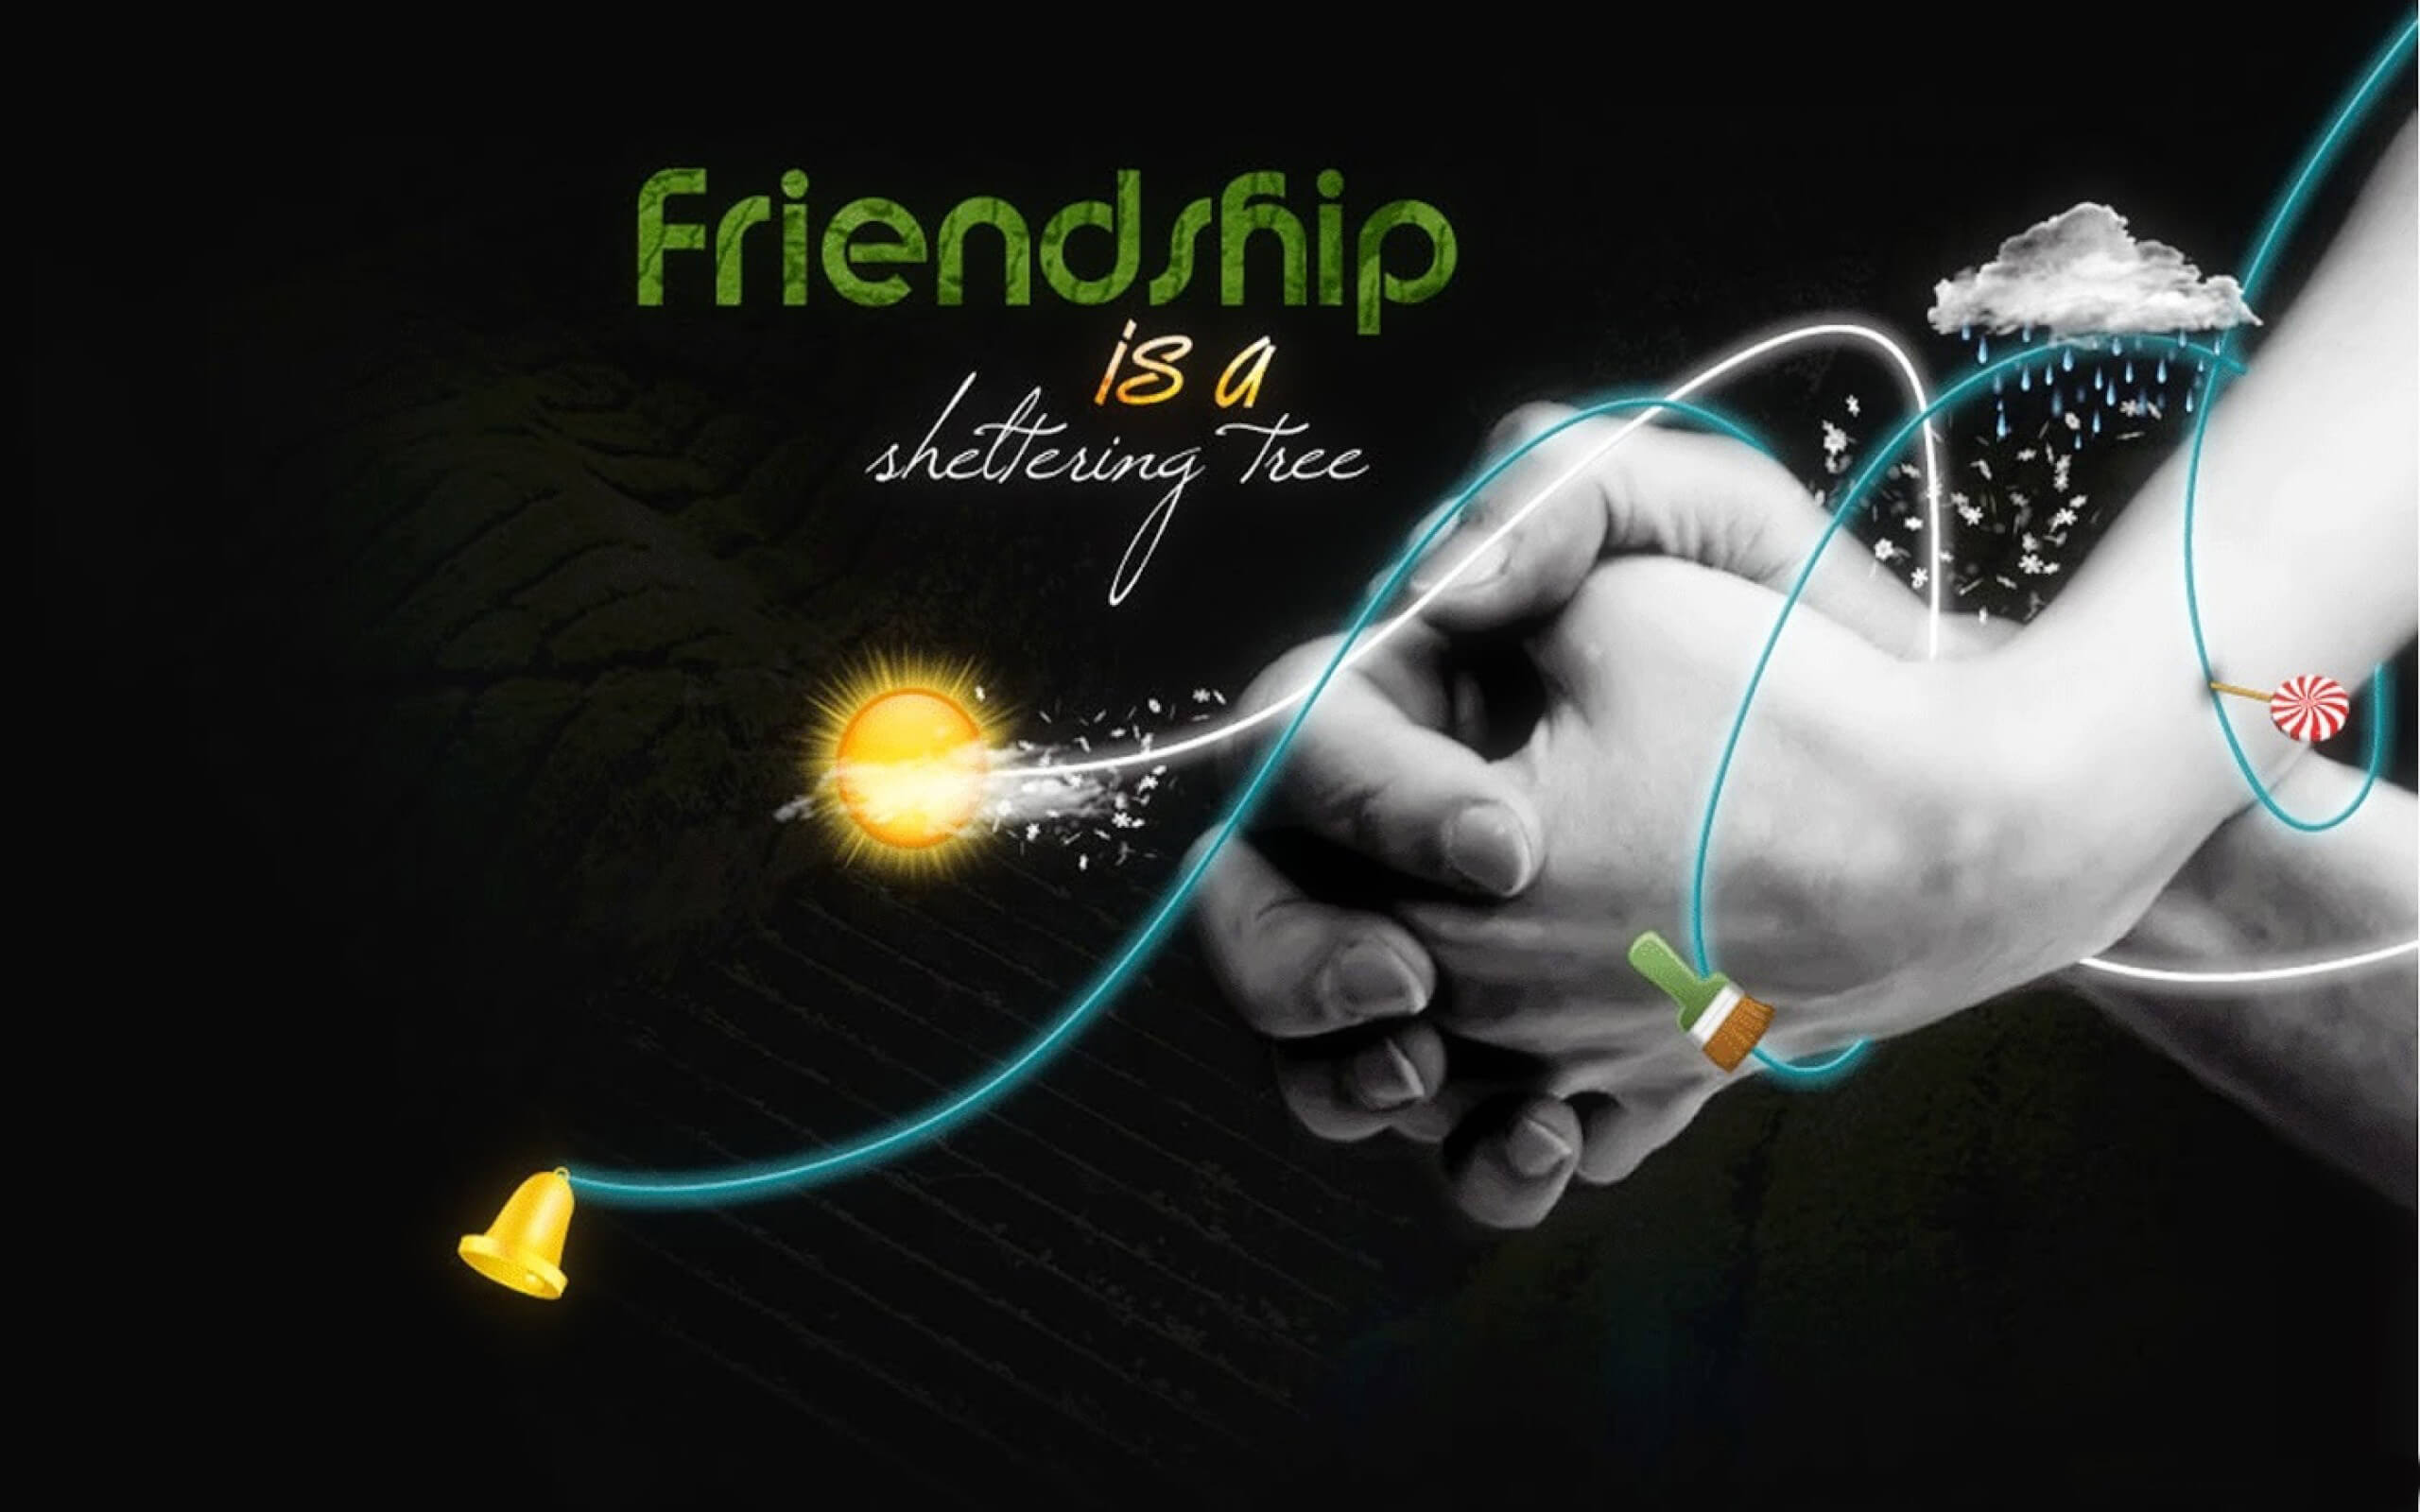 happy friendship day hand close latest hd wallpaper